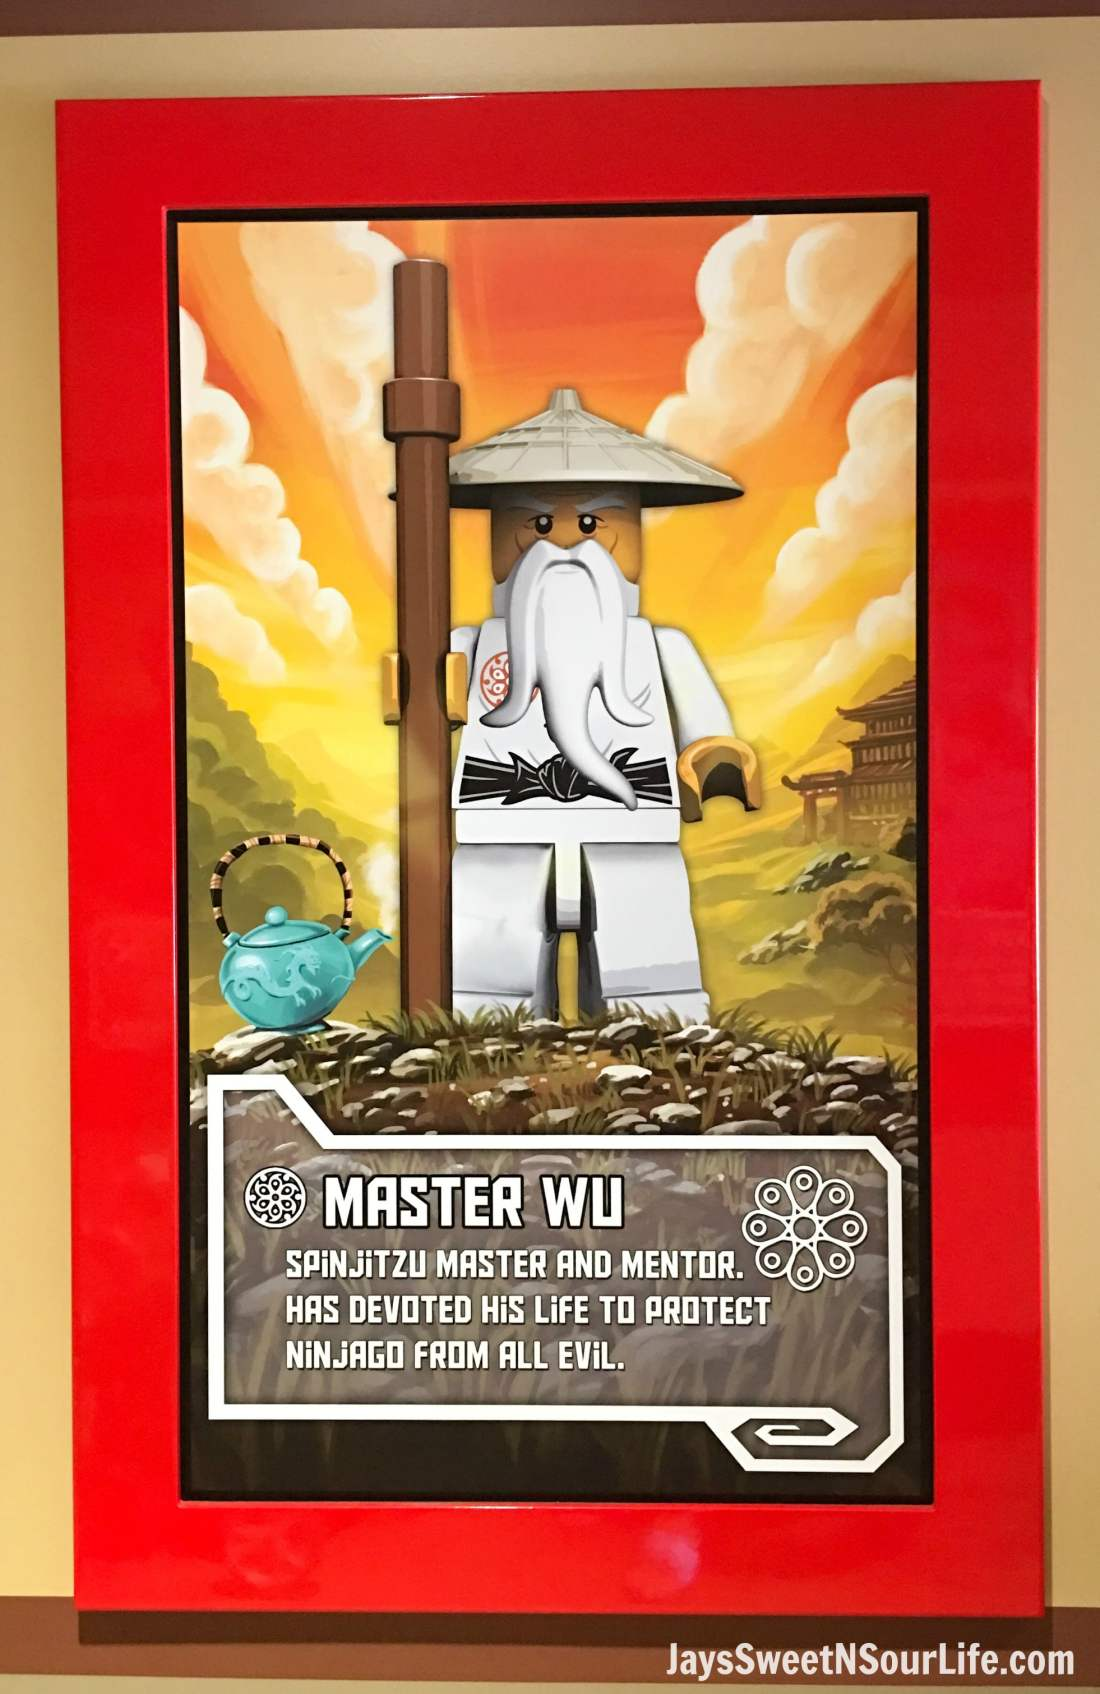 Legoland Florida Poster of Master Wu in the Ninjago World Ride. Spend your summer building memories at Legoland in Florida. There is something for the whole family to enjoy at this wonderful Theme Park.